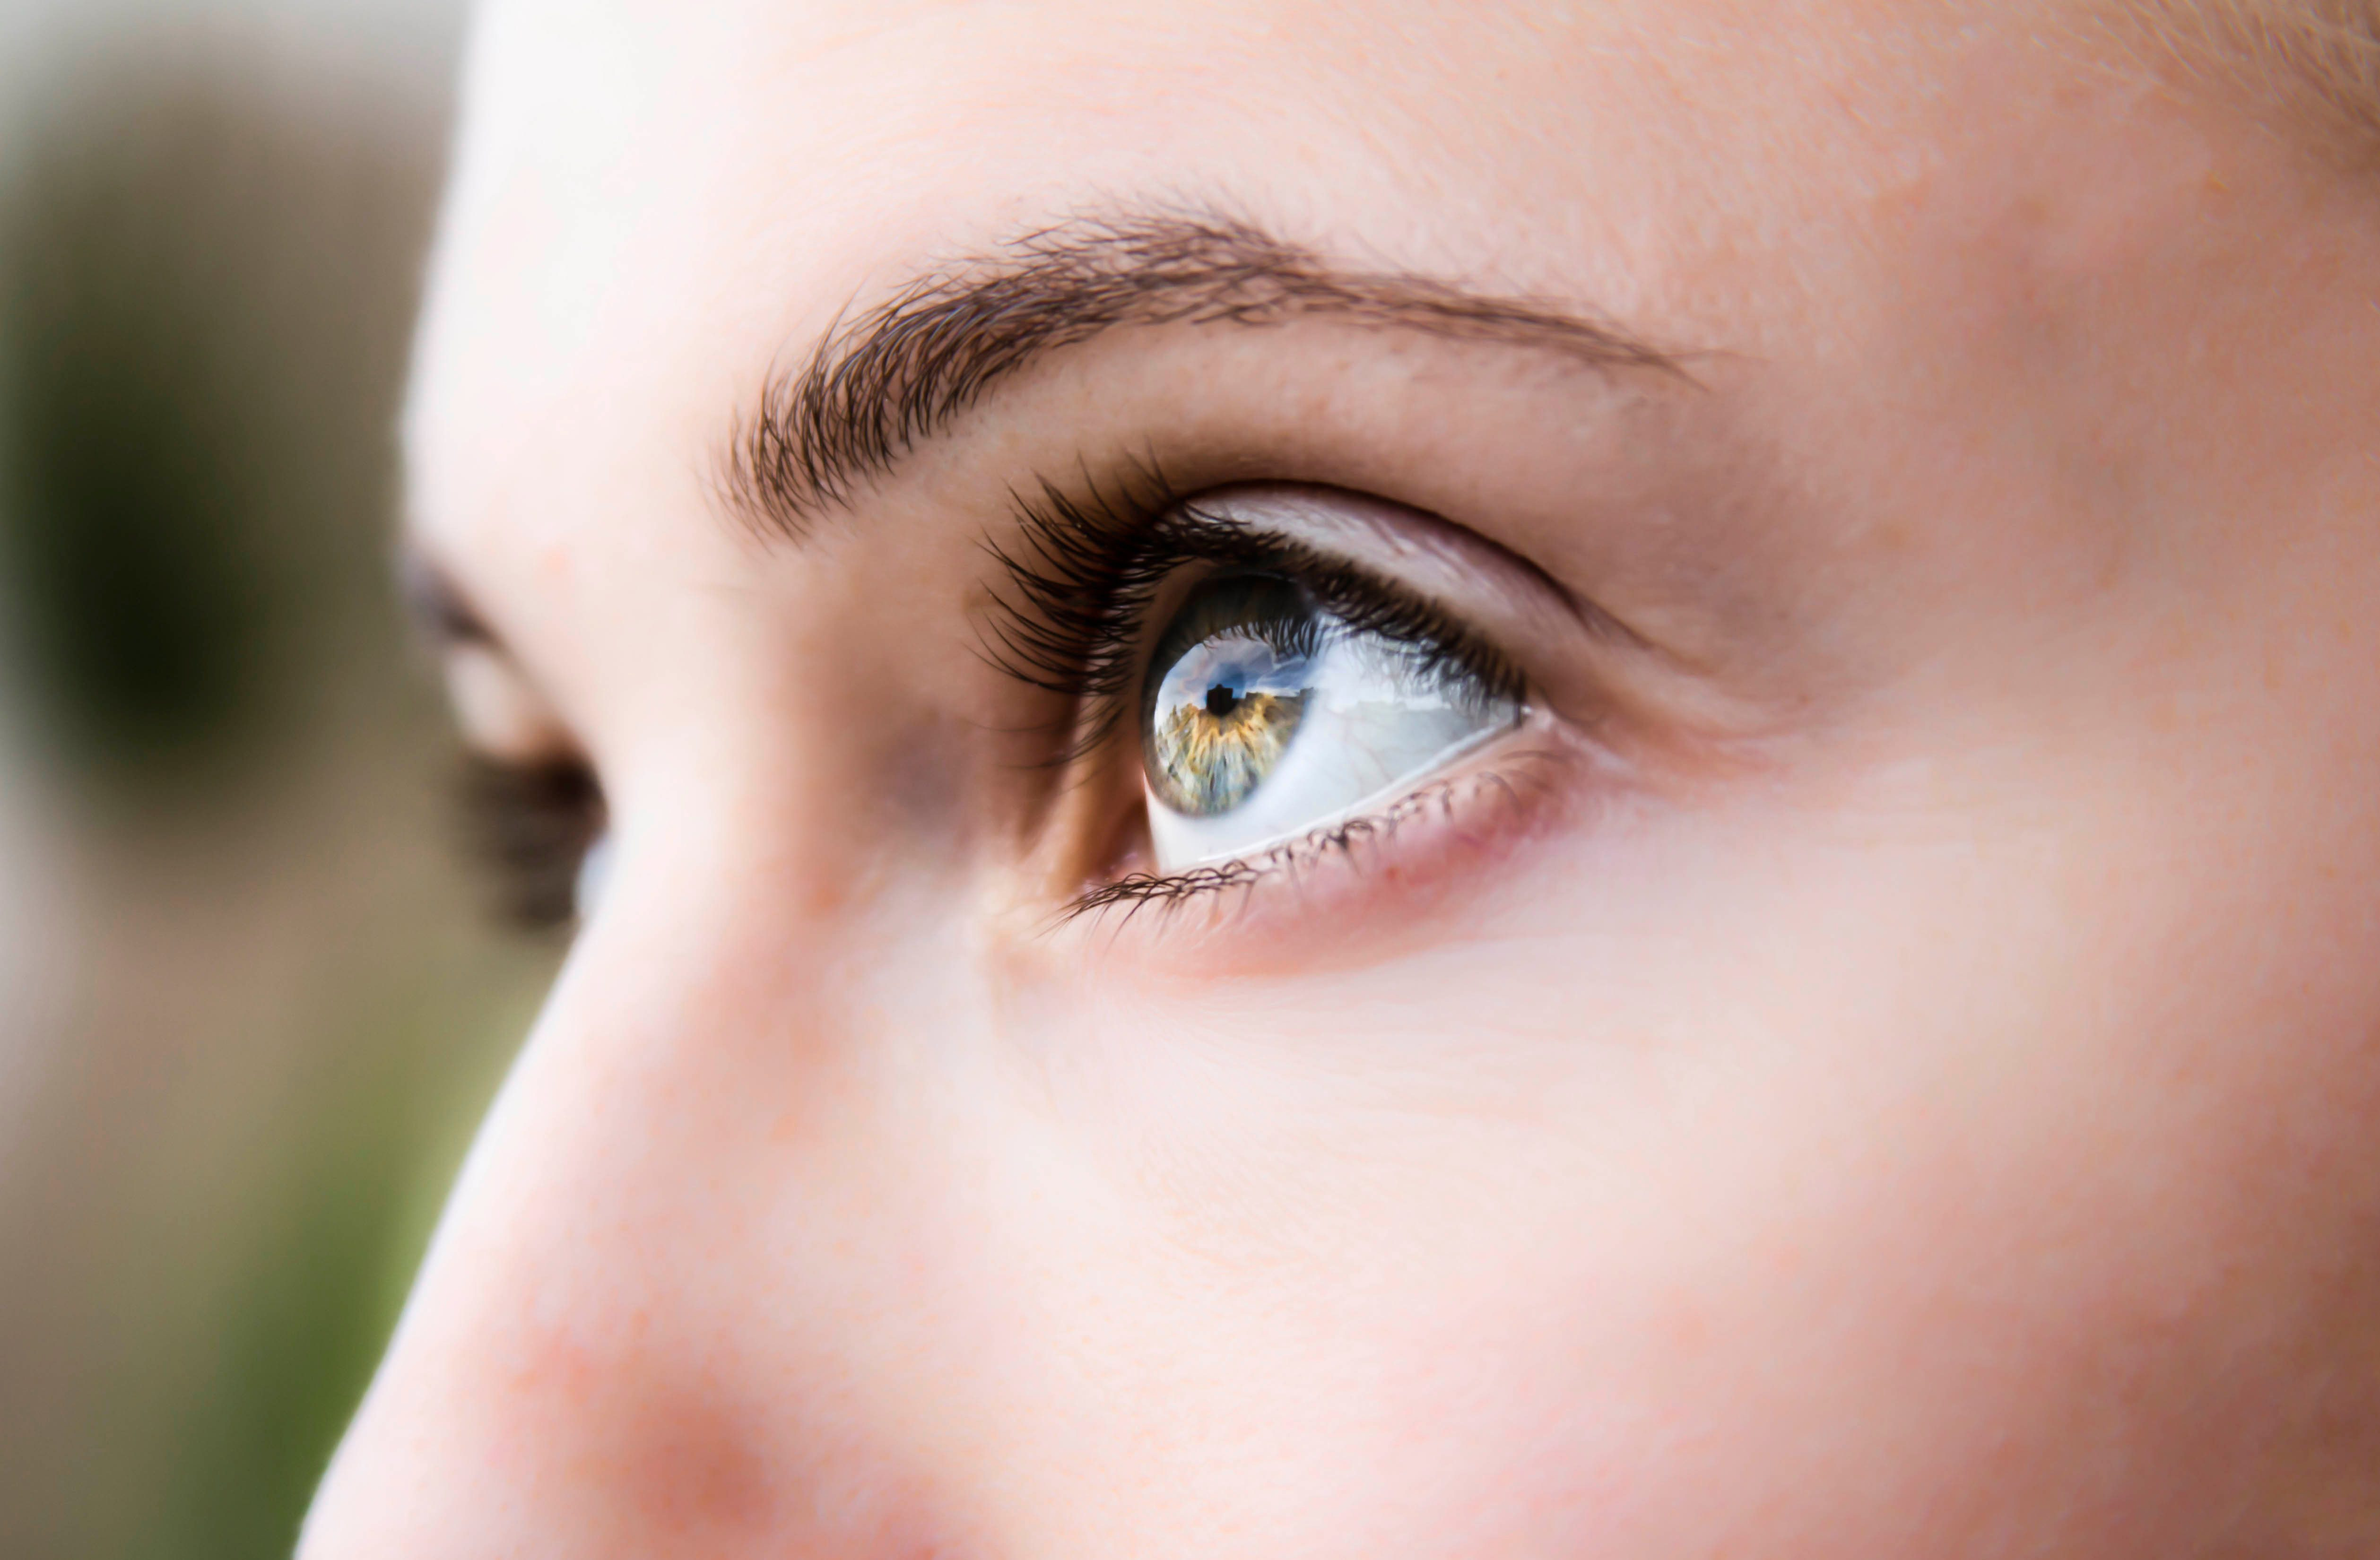 Why Doctors Look In Your Eyes With A Light Best Health Magazine